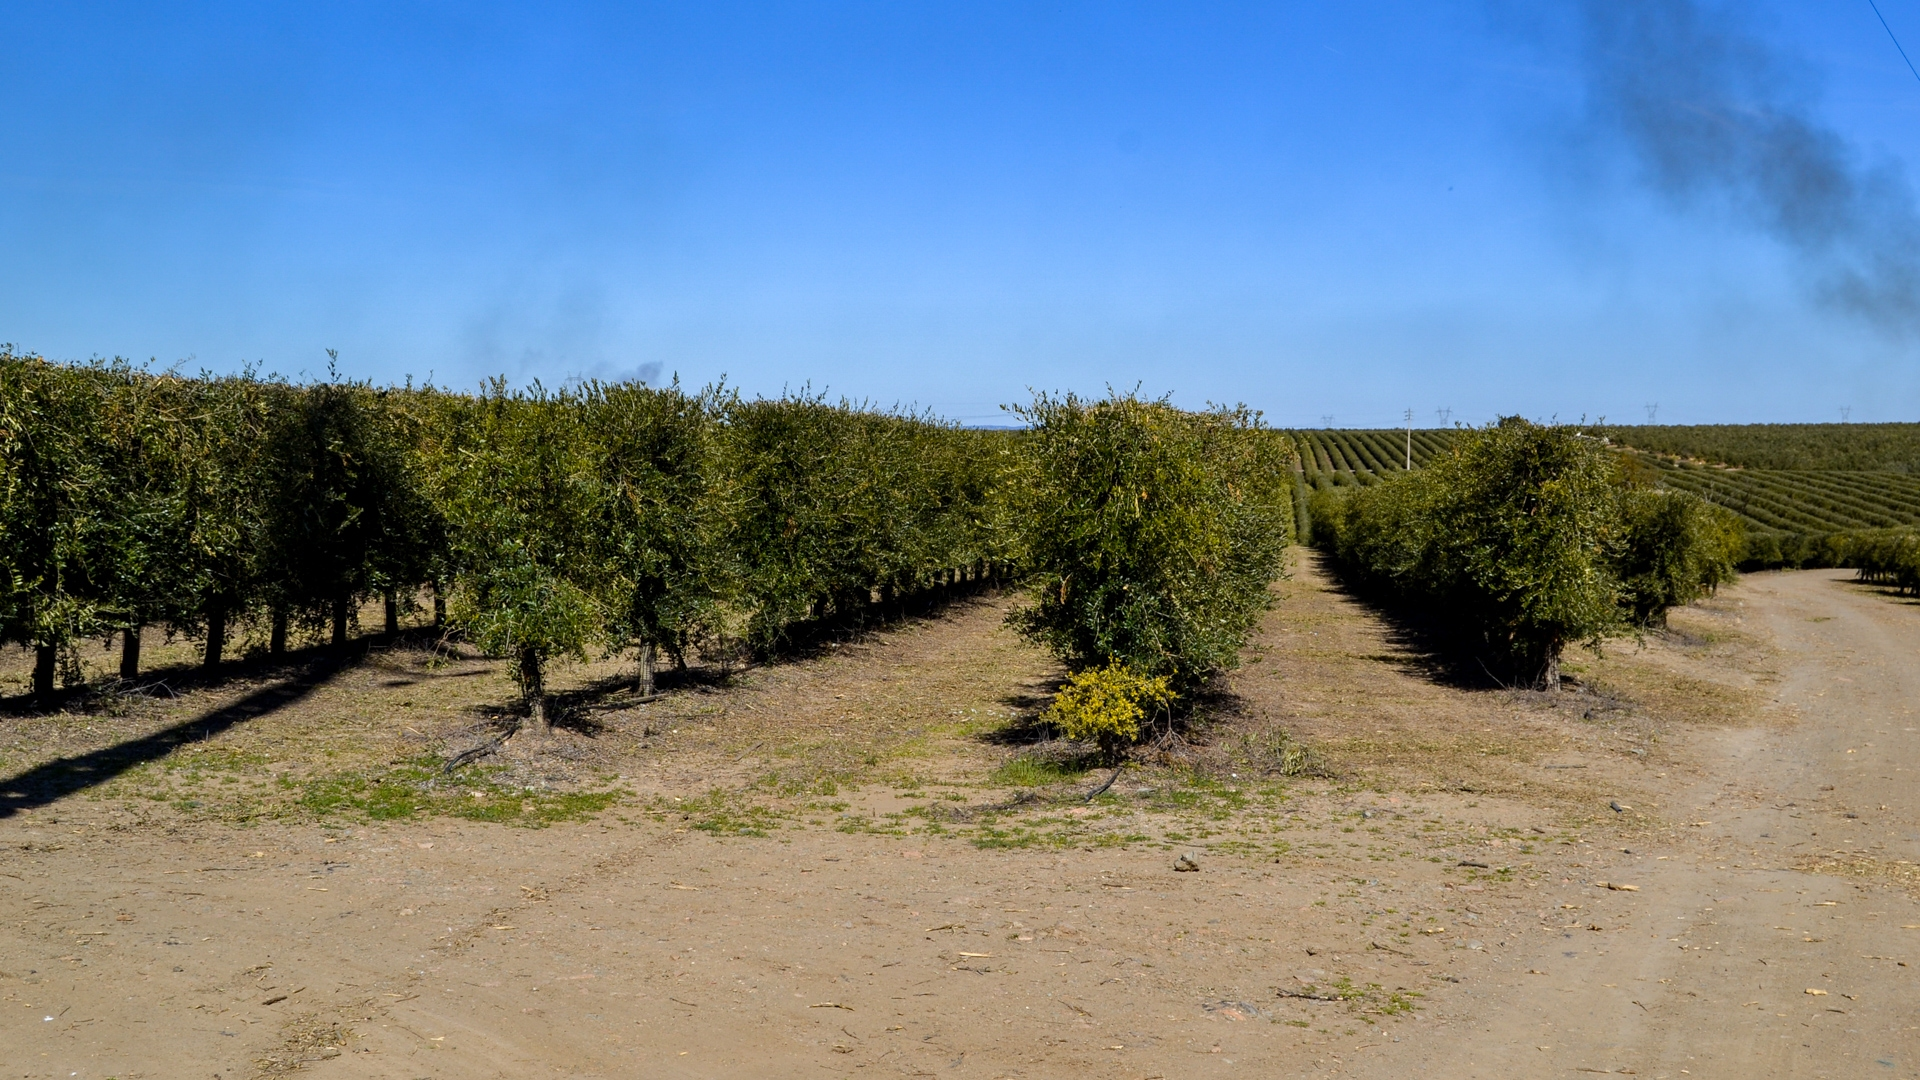 86ha Estate with olive groves in Ferreira do Alentejo, Beja - Lower Alentejo | PPR279 The 'Herdade do Olival Mayor' has a global area of ​​86.5 hectares, of which only 78.5 hectares are completely filled by Olive.